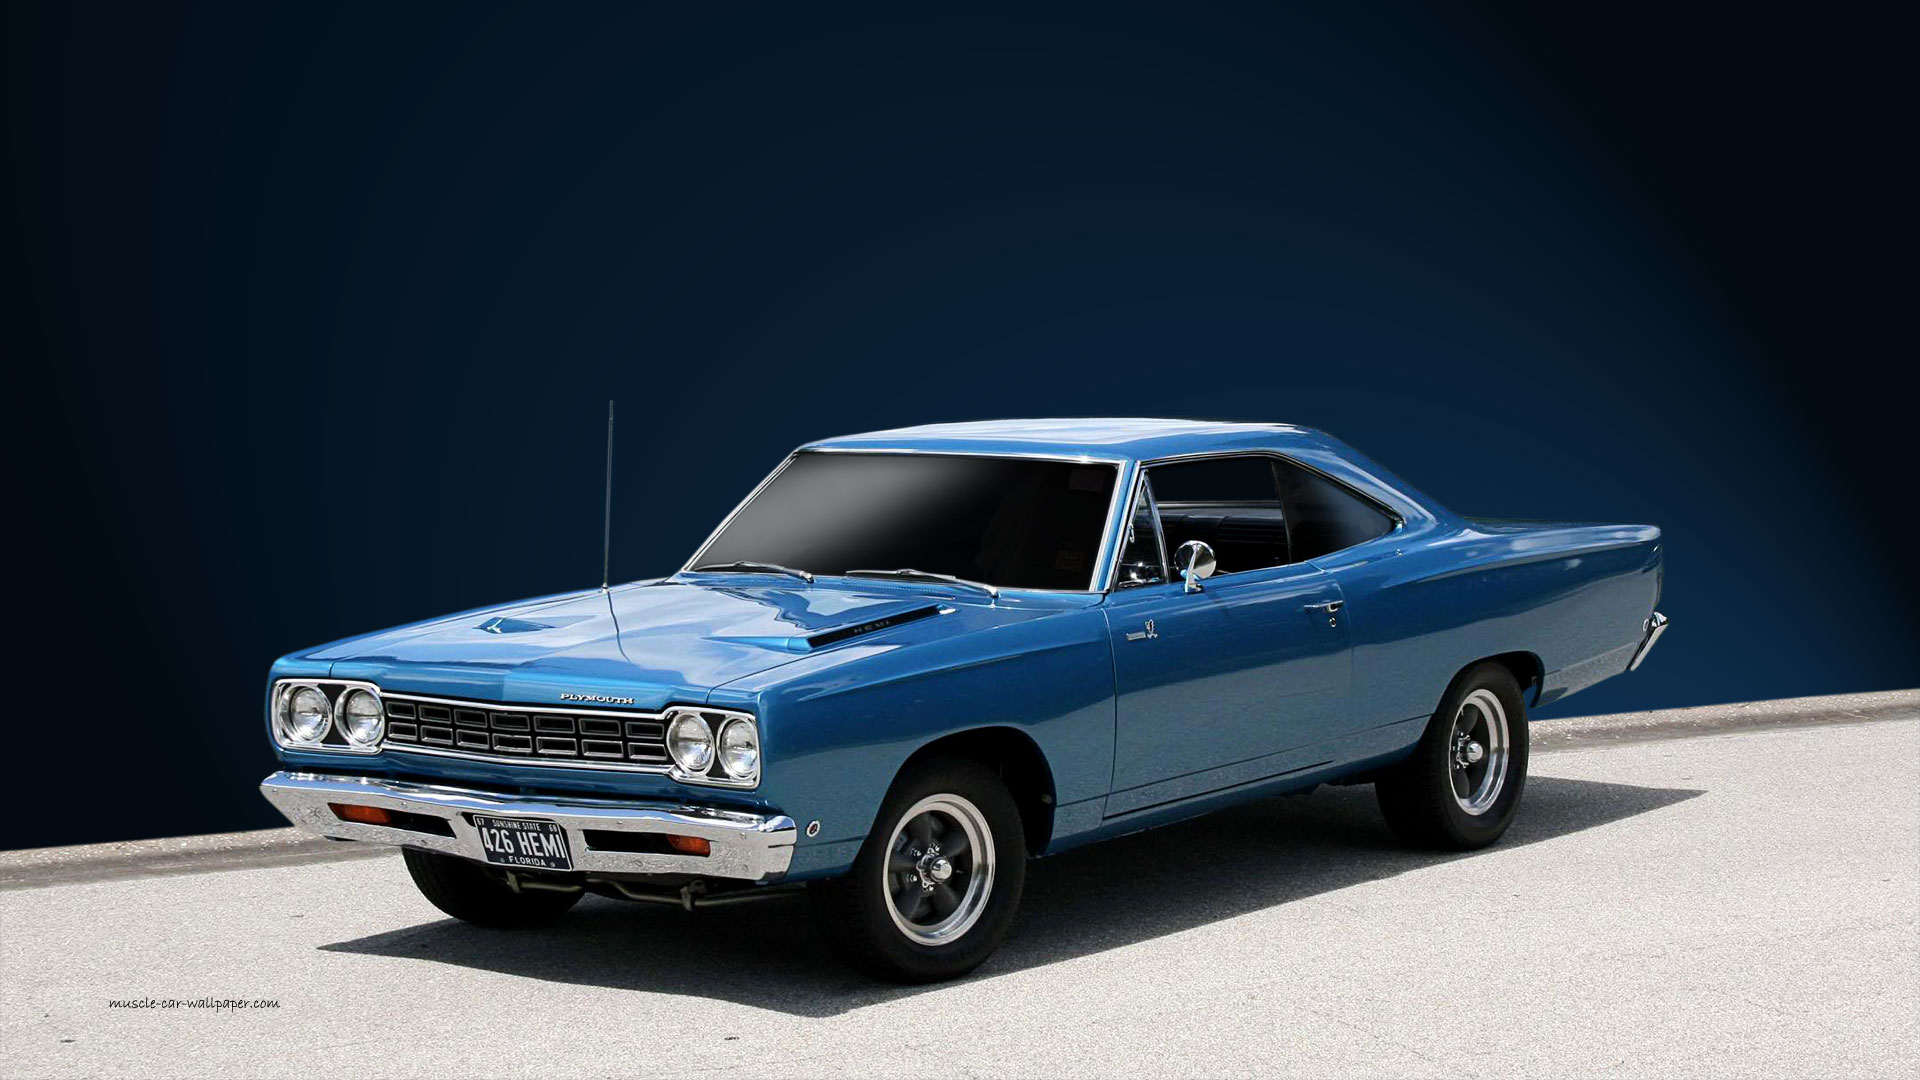 1920x1080 - Plymouth Road Runner Wallpapers 3